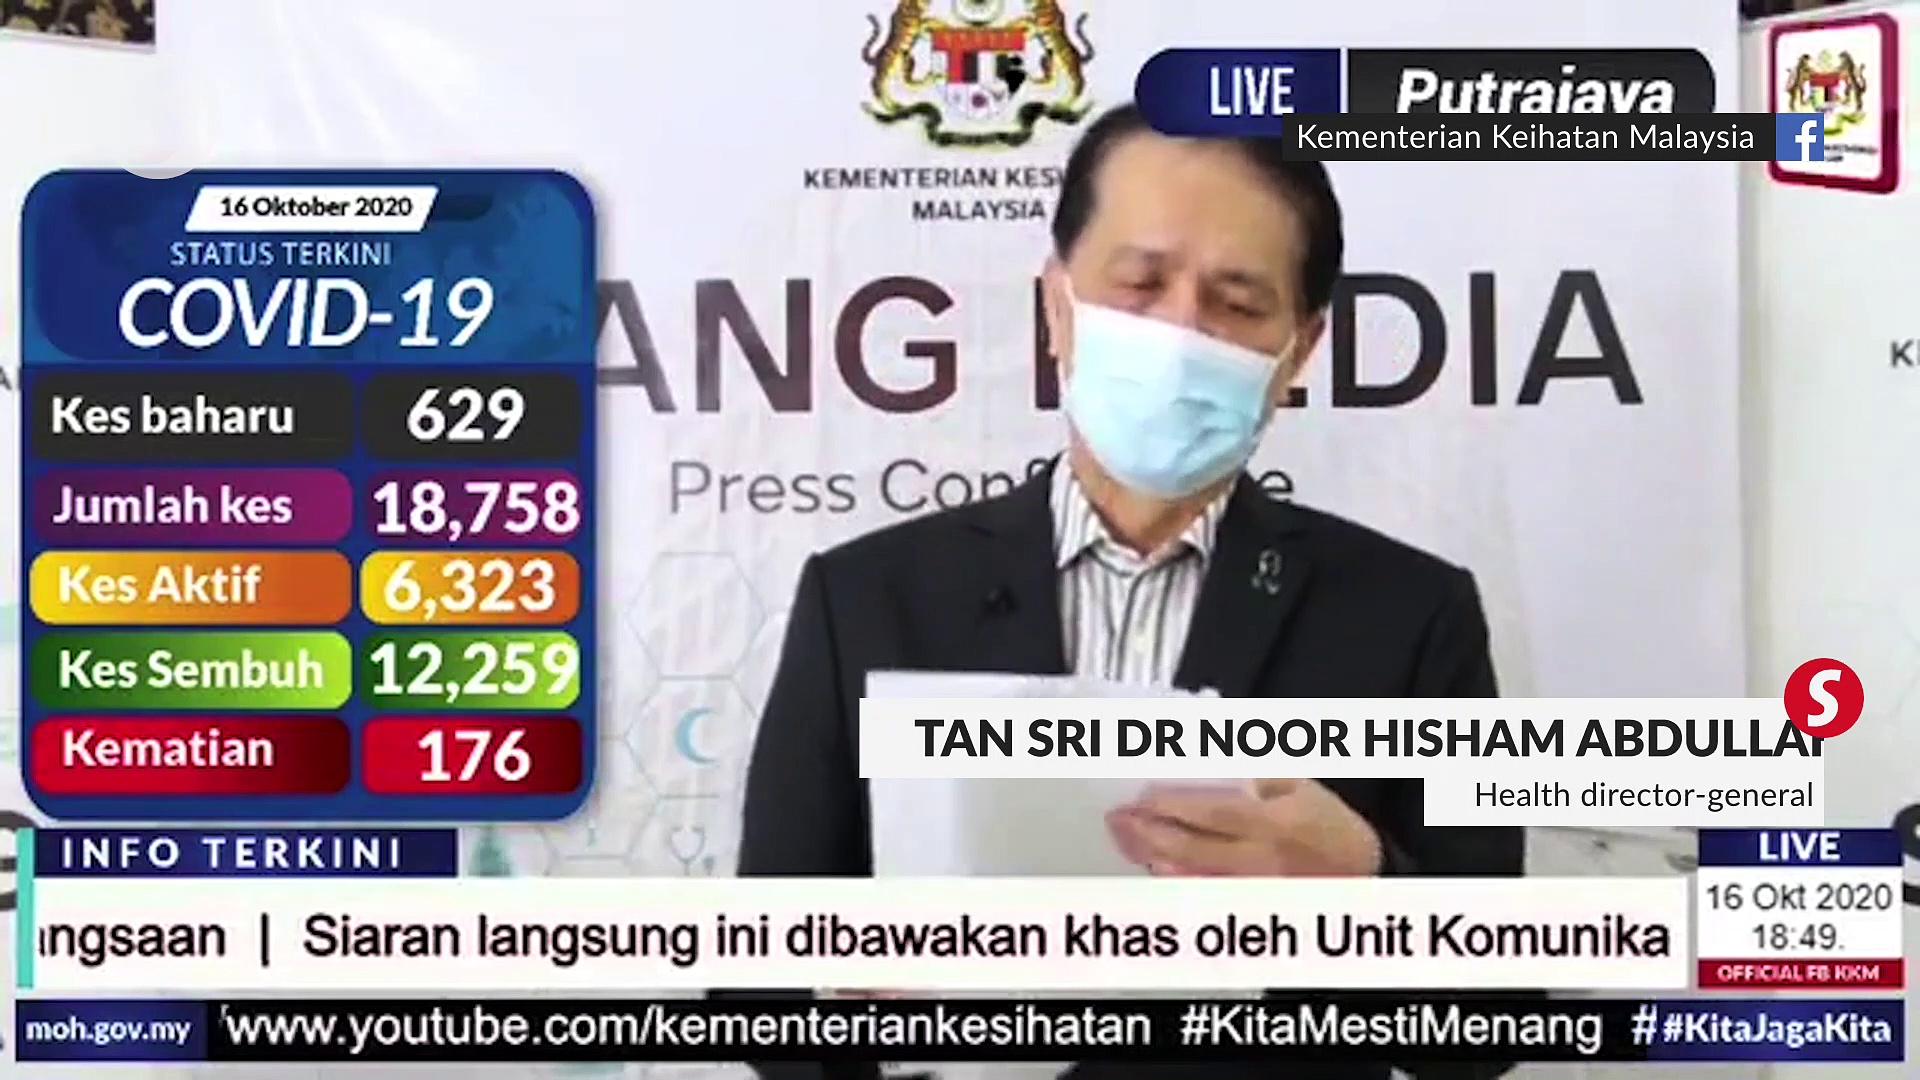 Health DG- 70% to 80% of Covid-19 patients in Sabah are asymptomatic or with mild symptoms